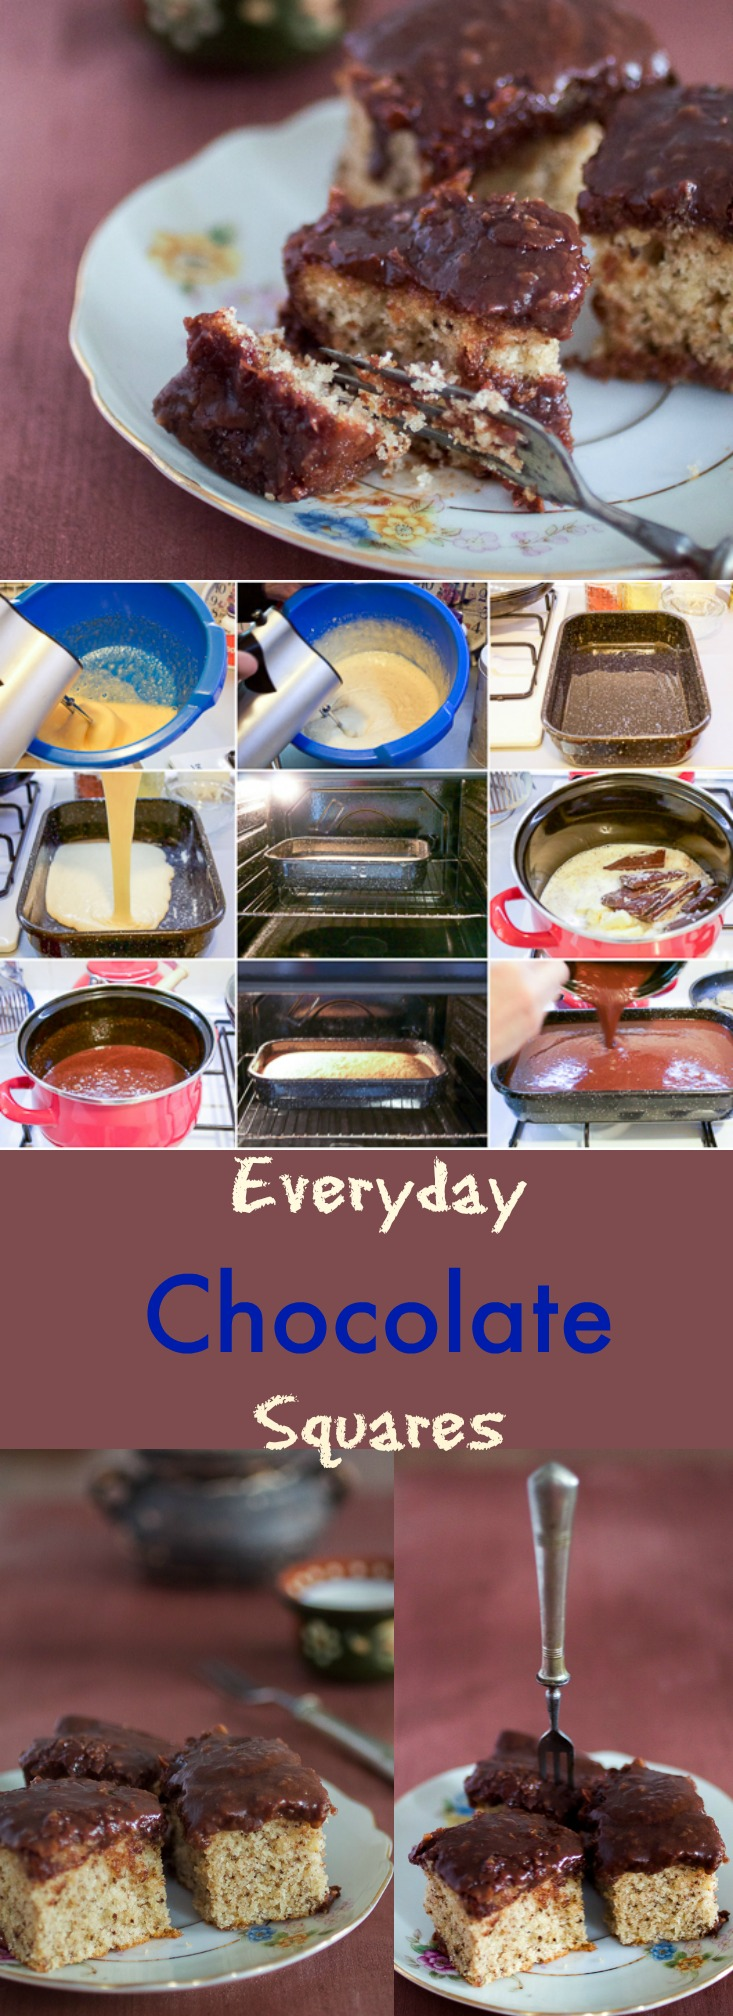 Super easy everyday chocolate squares you can make in under 45 minutes. If looking for a quick dessert that will leave everyone speechless, this is it.